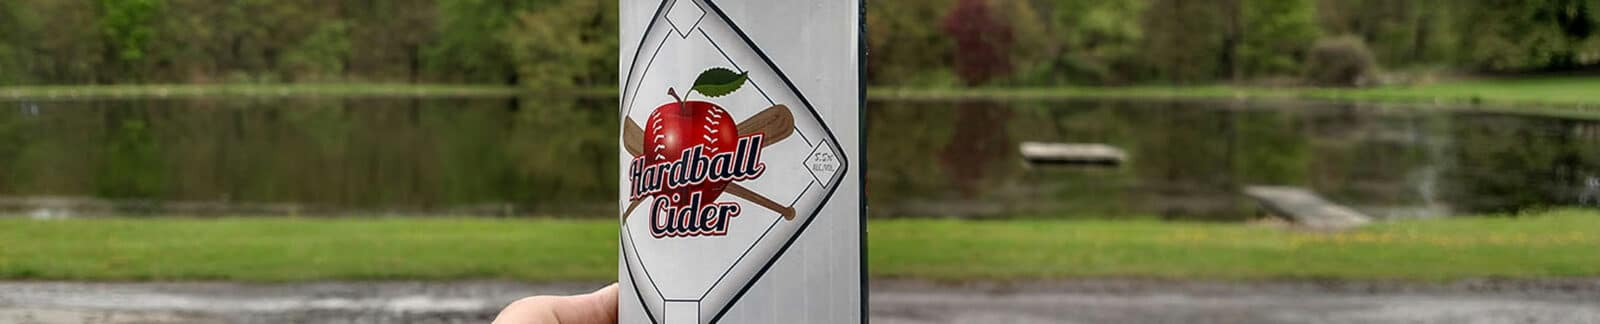 Hardball Cider header